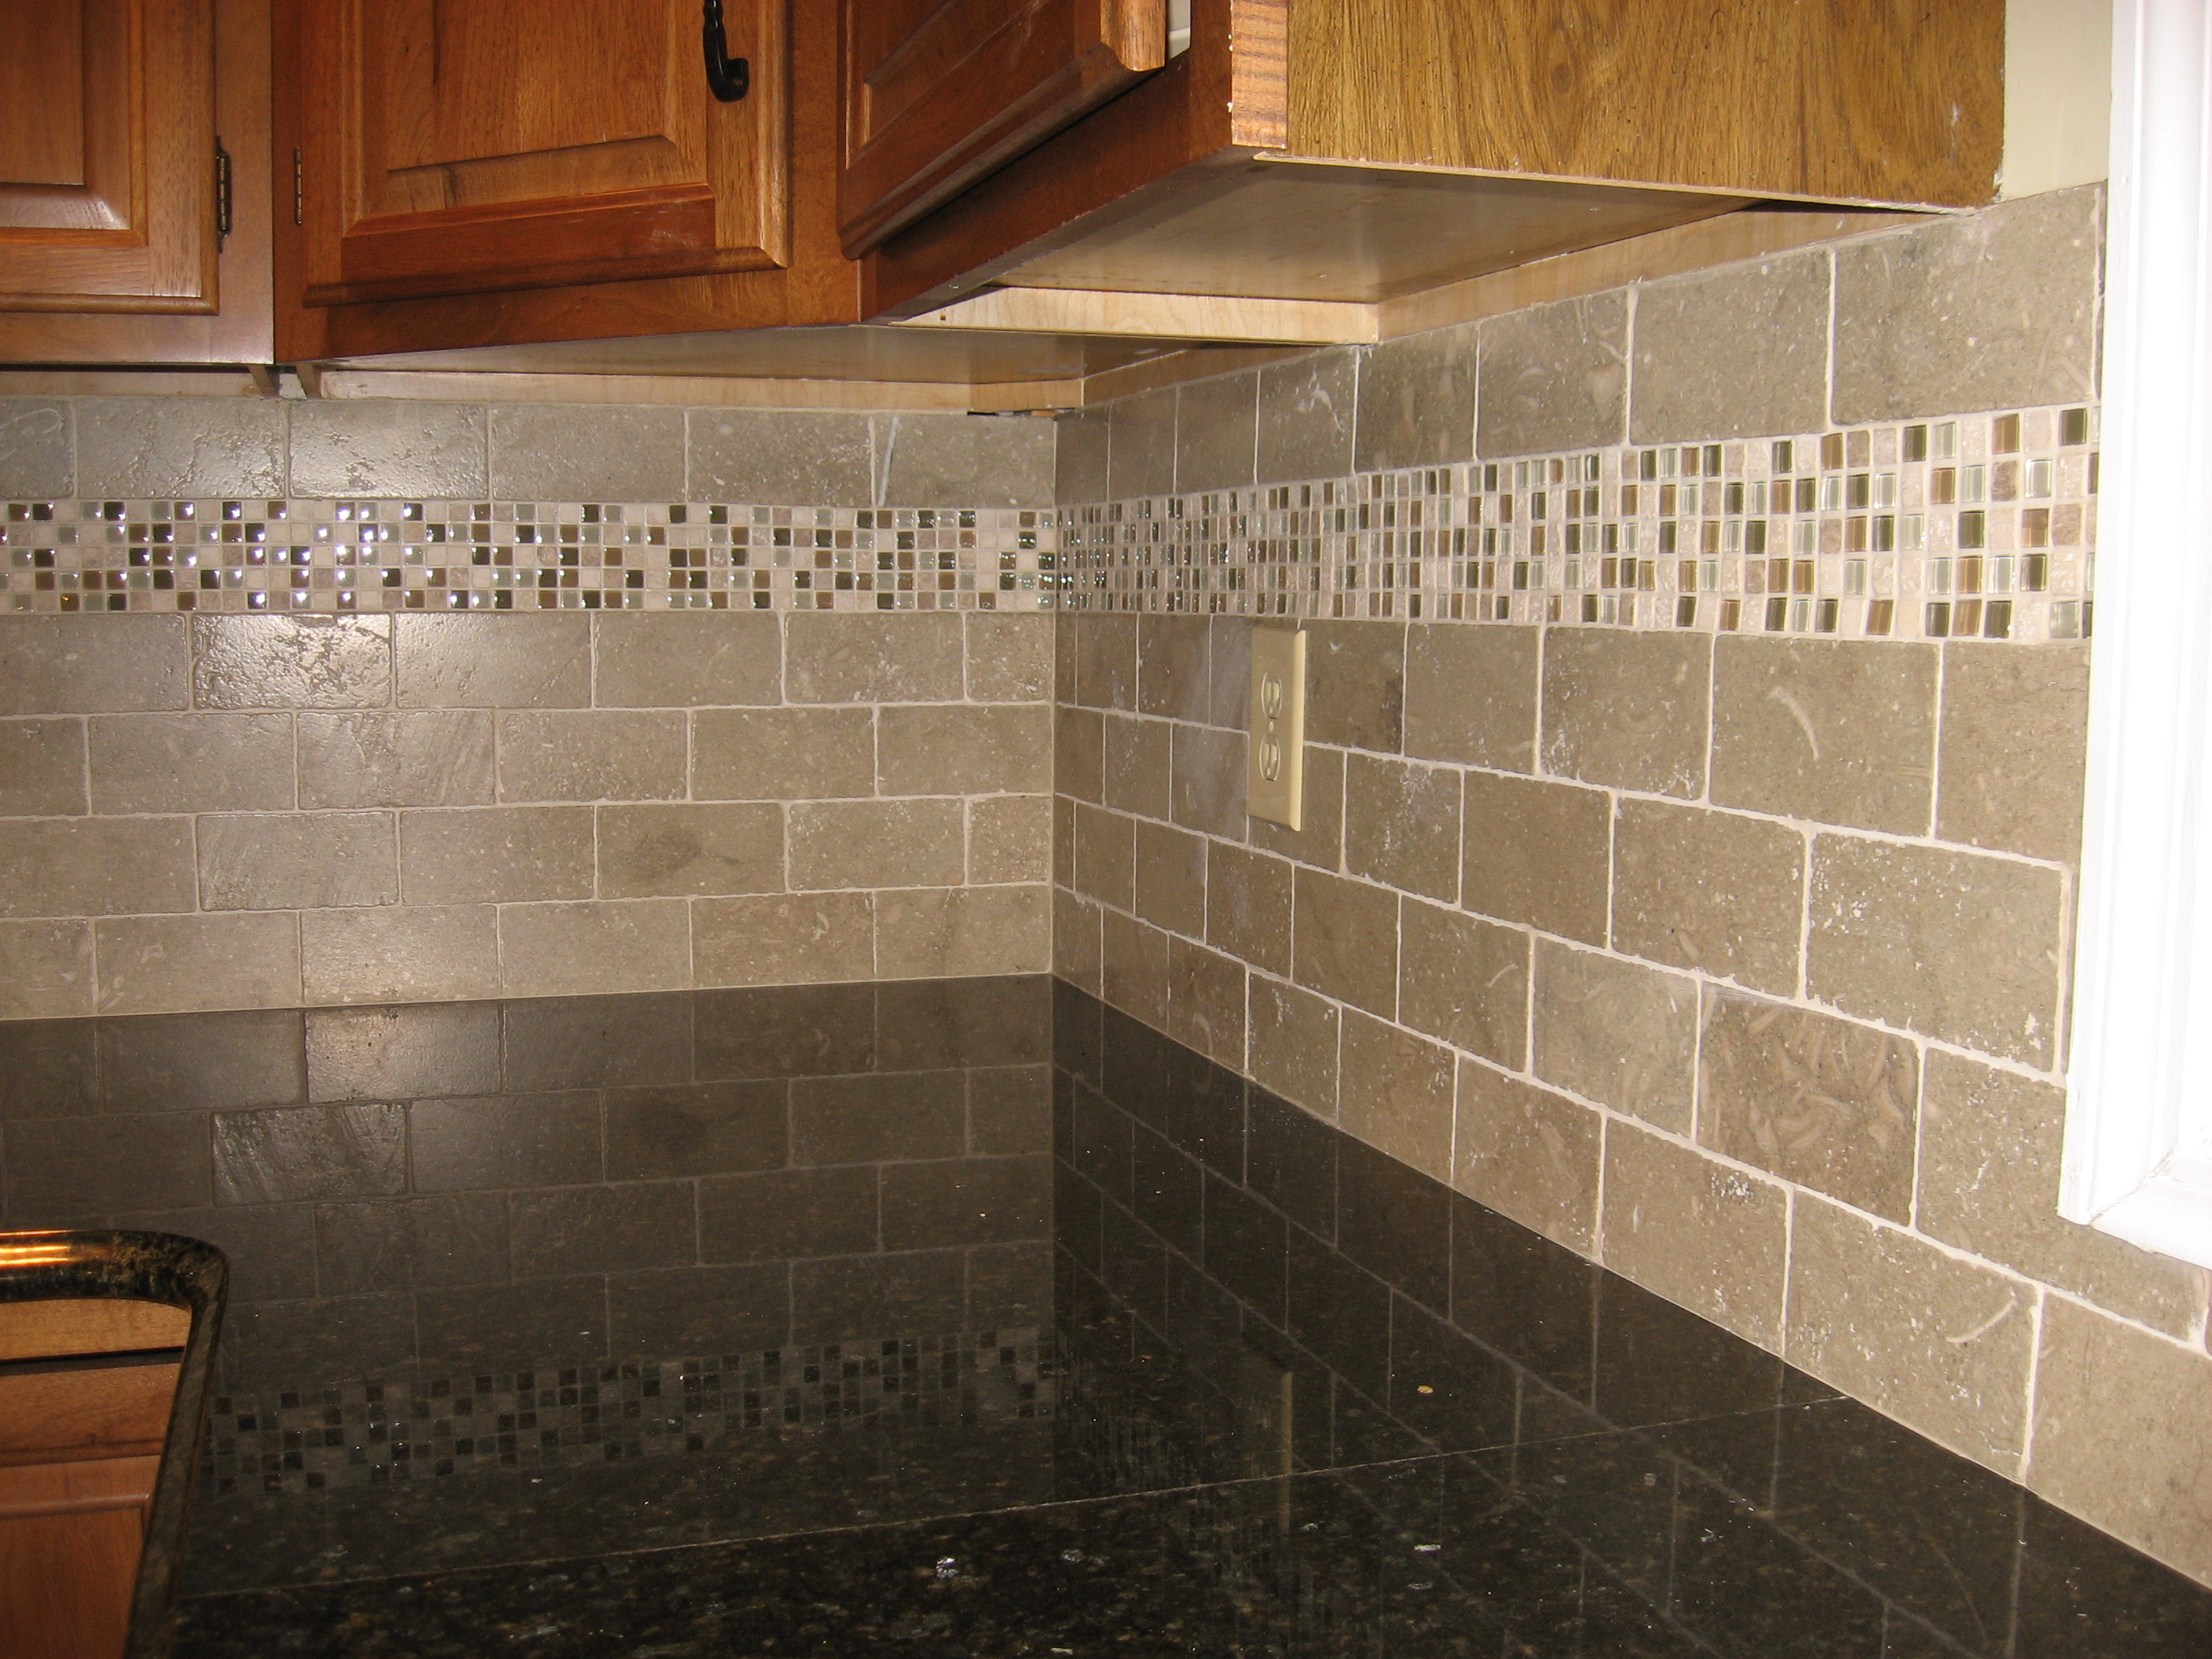 Kitchens Kitchen tile backsplash